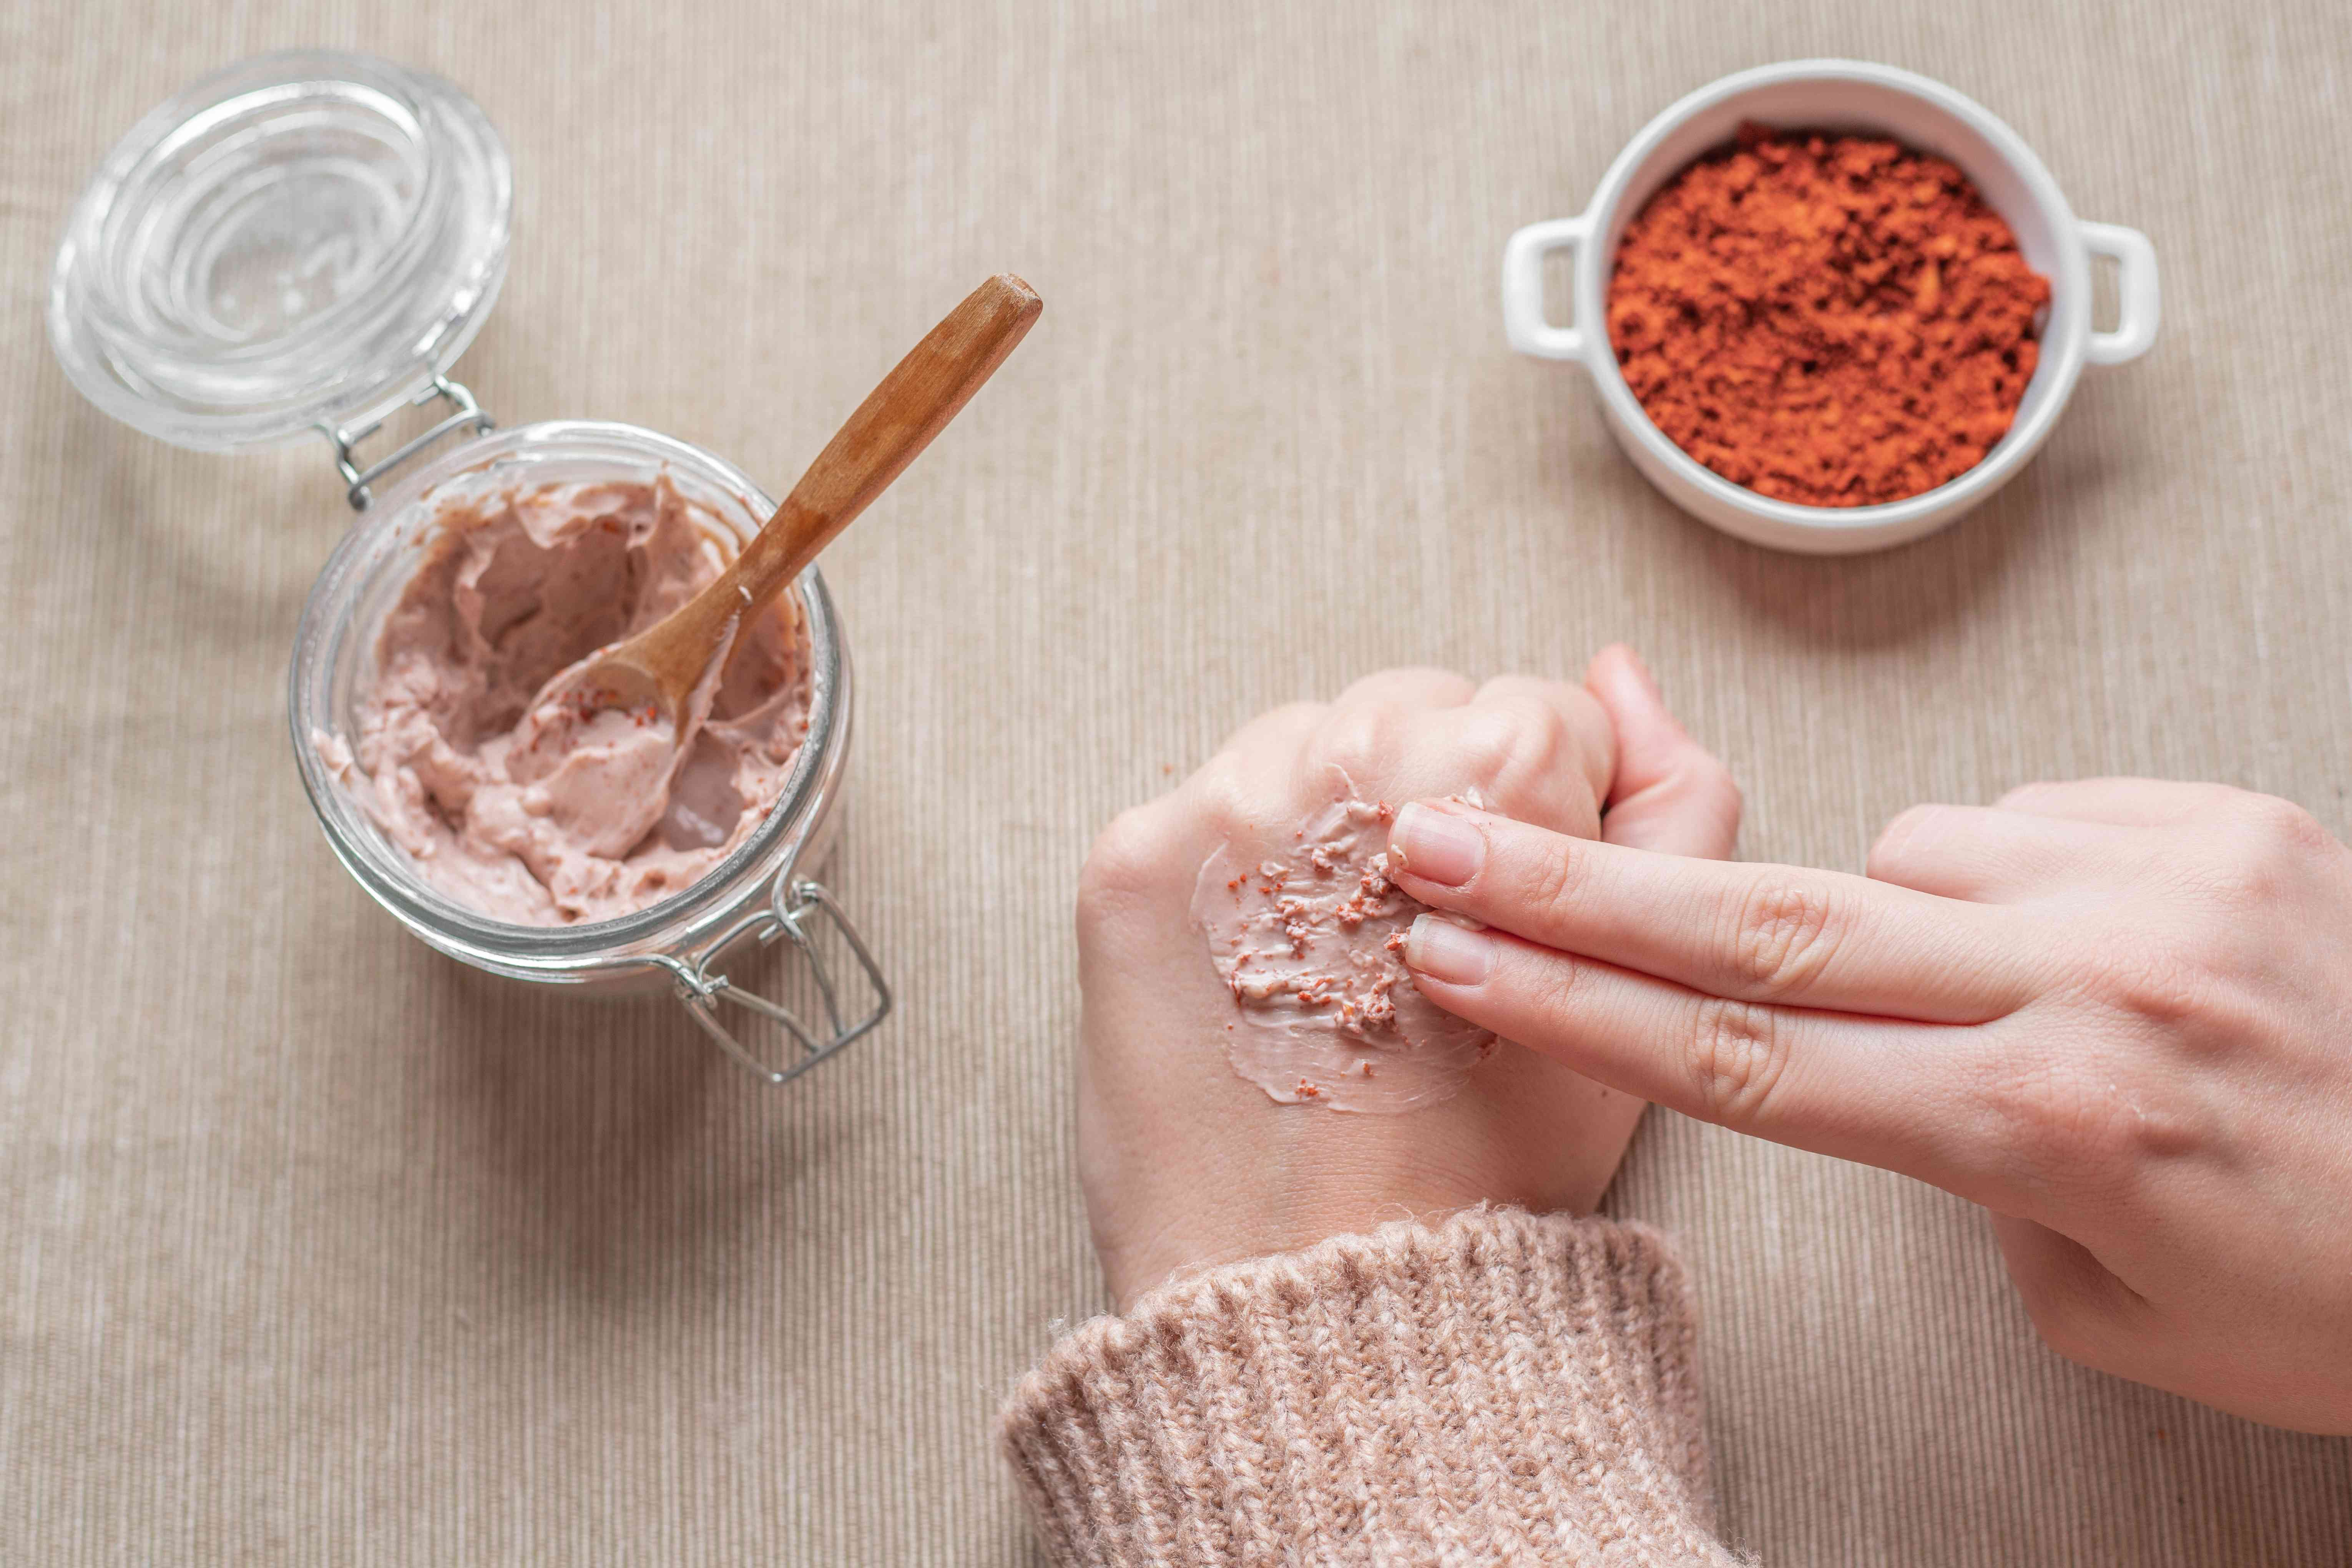 hands rub a pink avocado pit face mask on hands